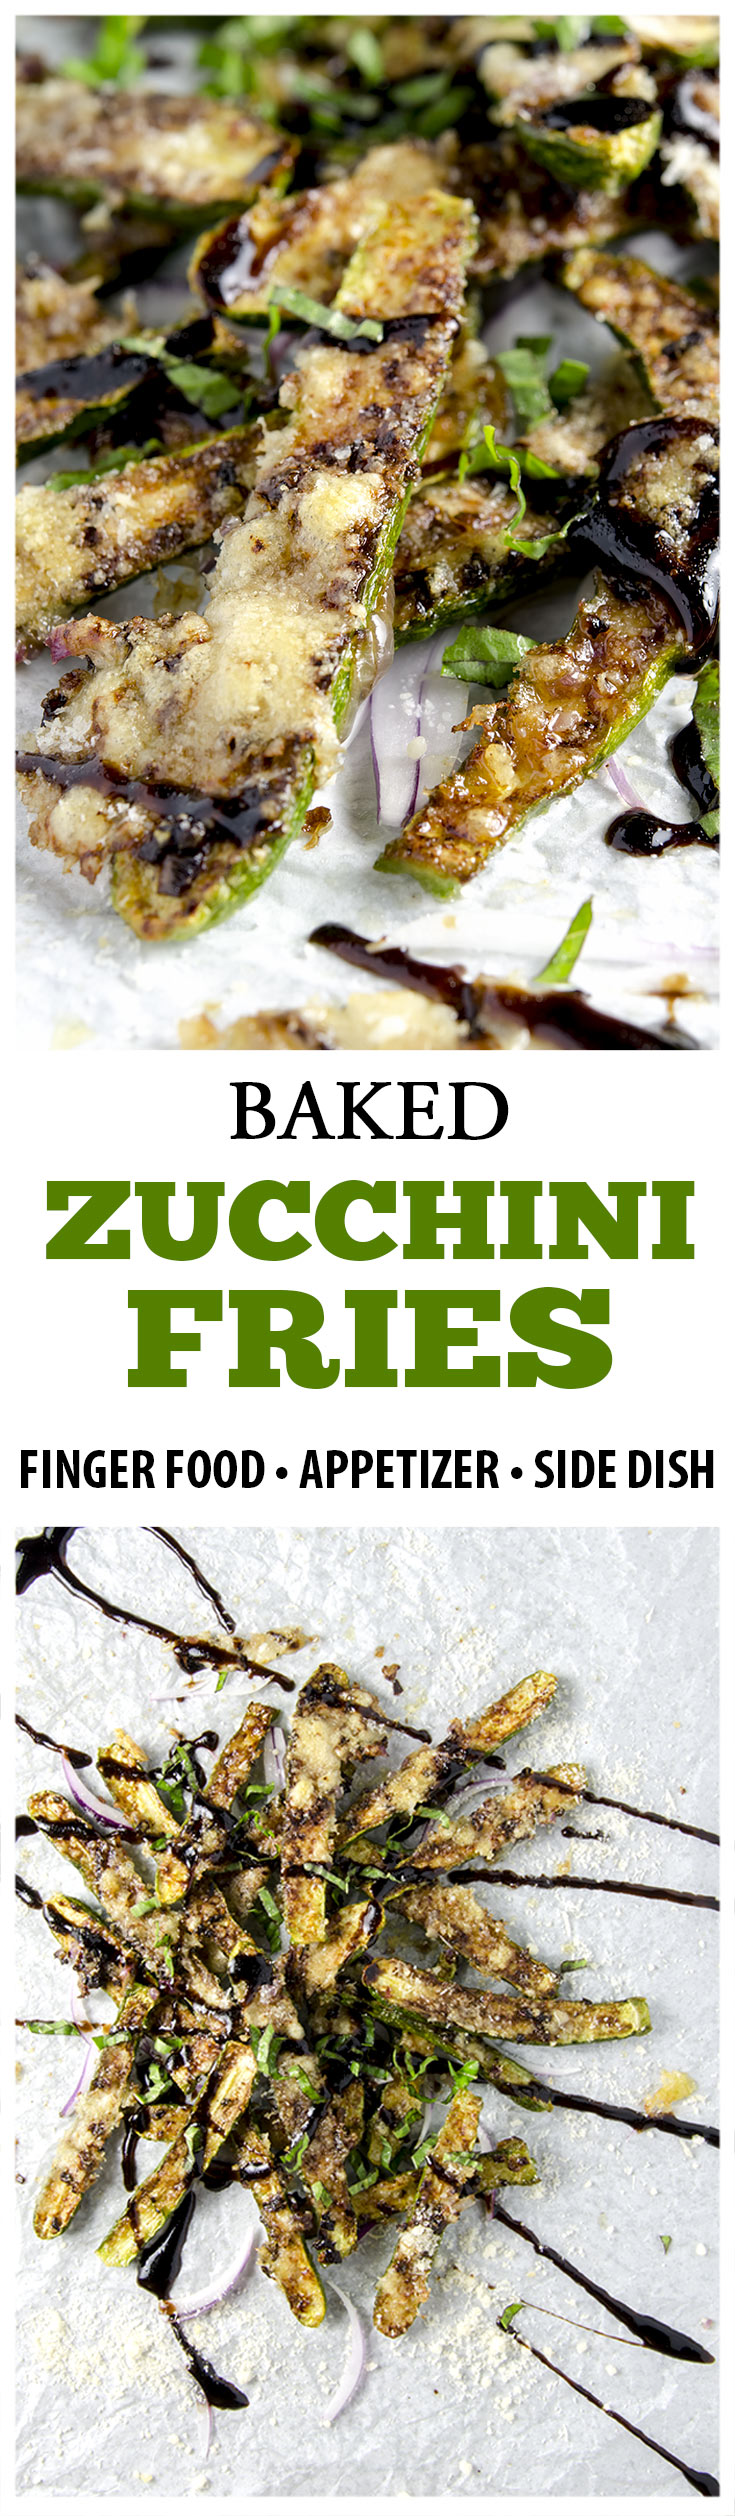 Making zucchini fries is easy, delicious and addicting! These healthy little bites of joy are a perfect side dish or appetizer for your next gathering.